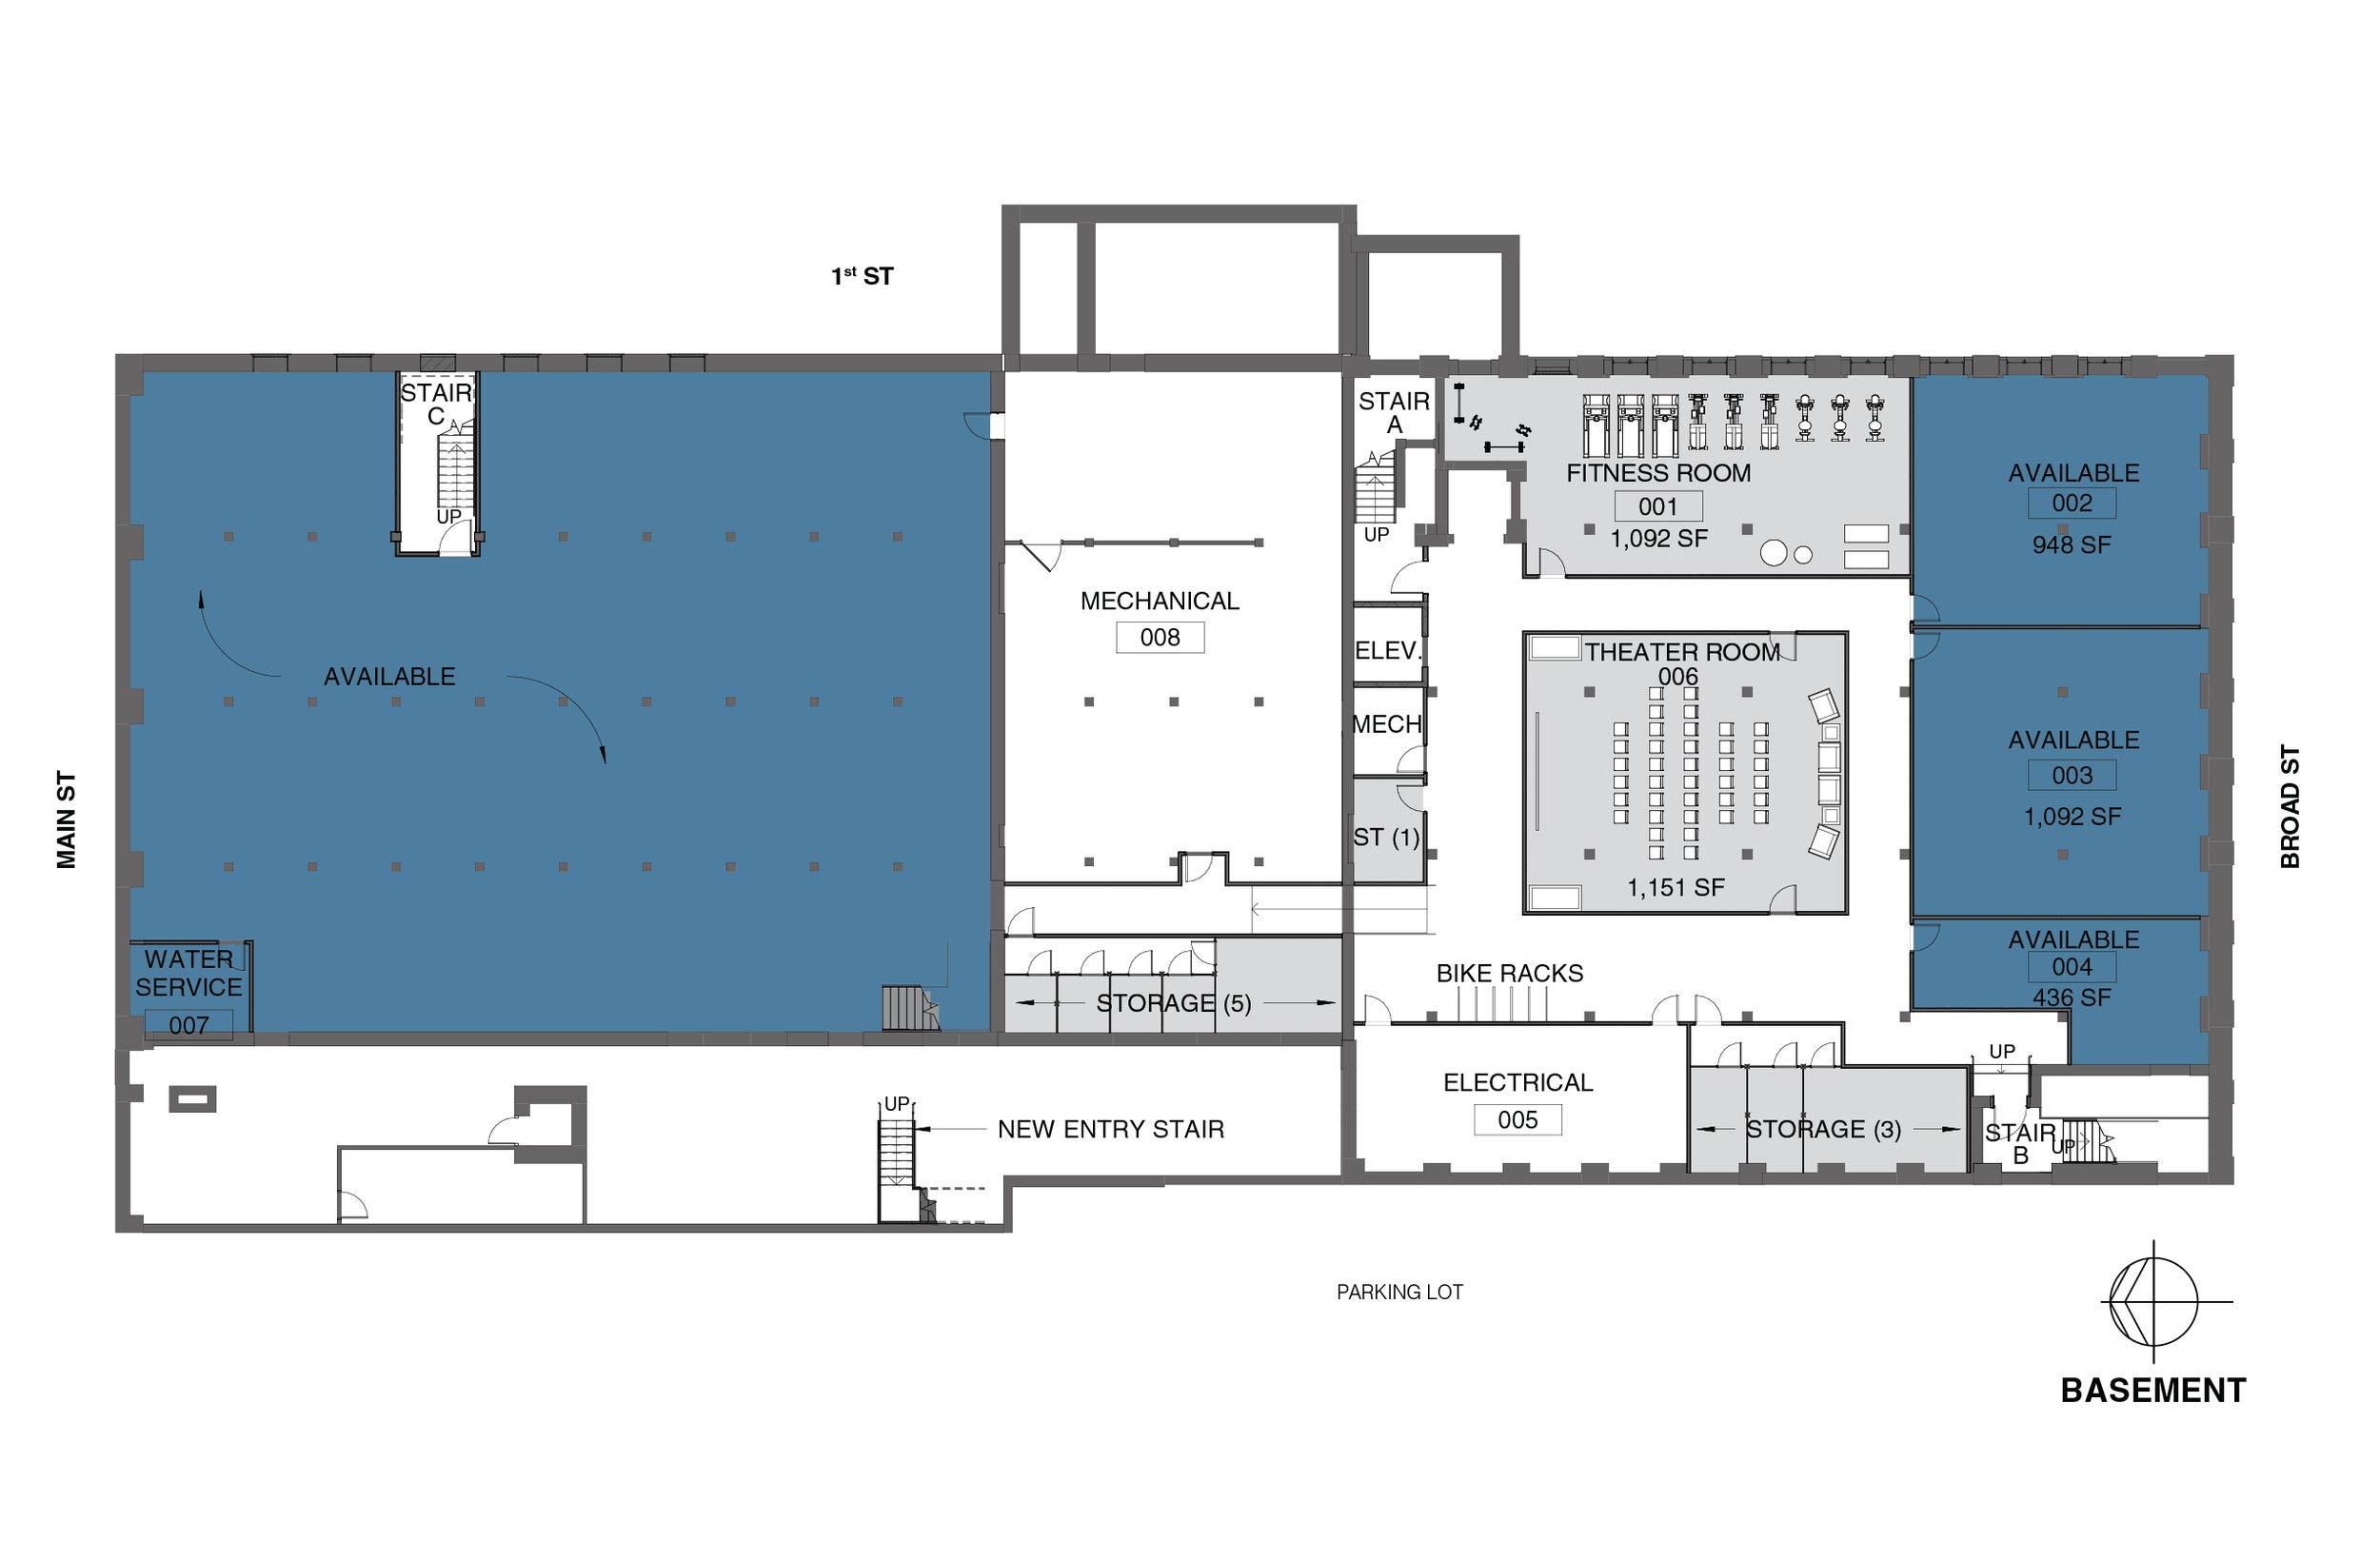 DOYLE_2018-03-09  PROPOSED TENANT SPACES-02.jpg